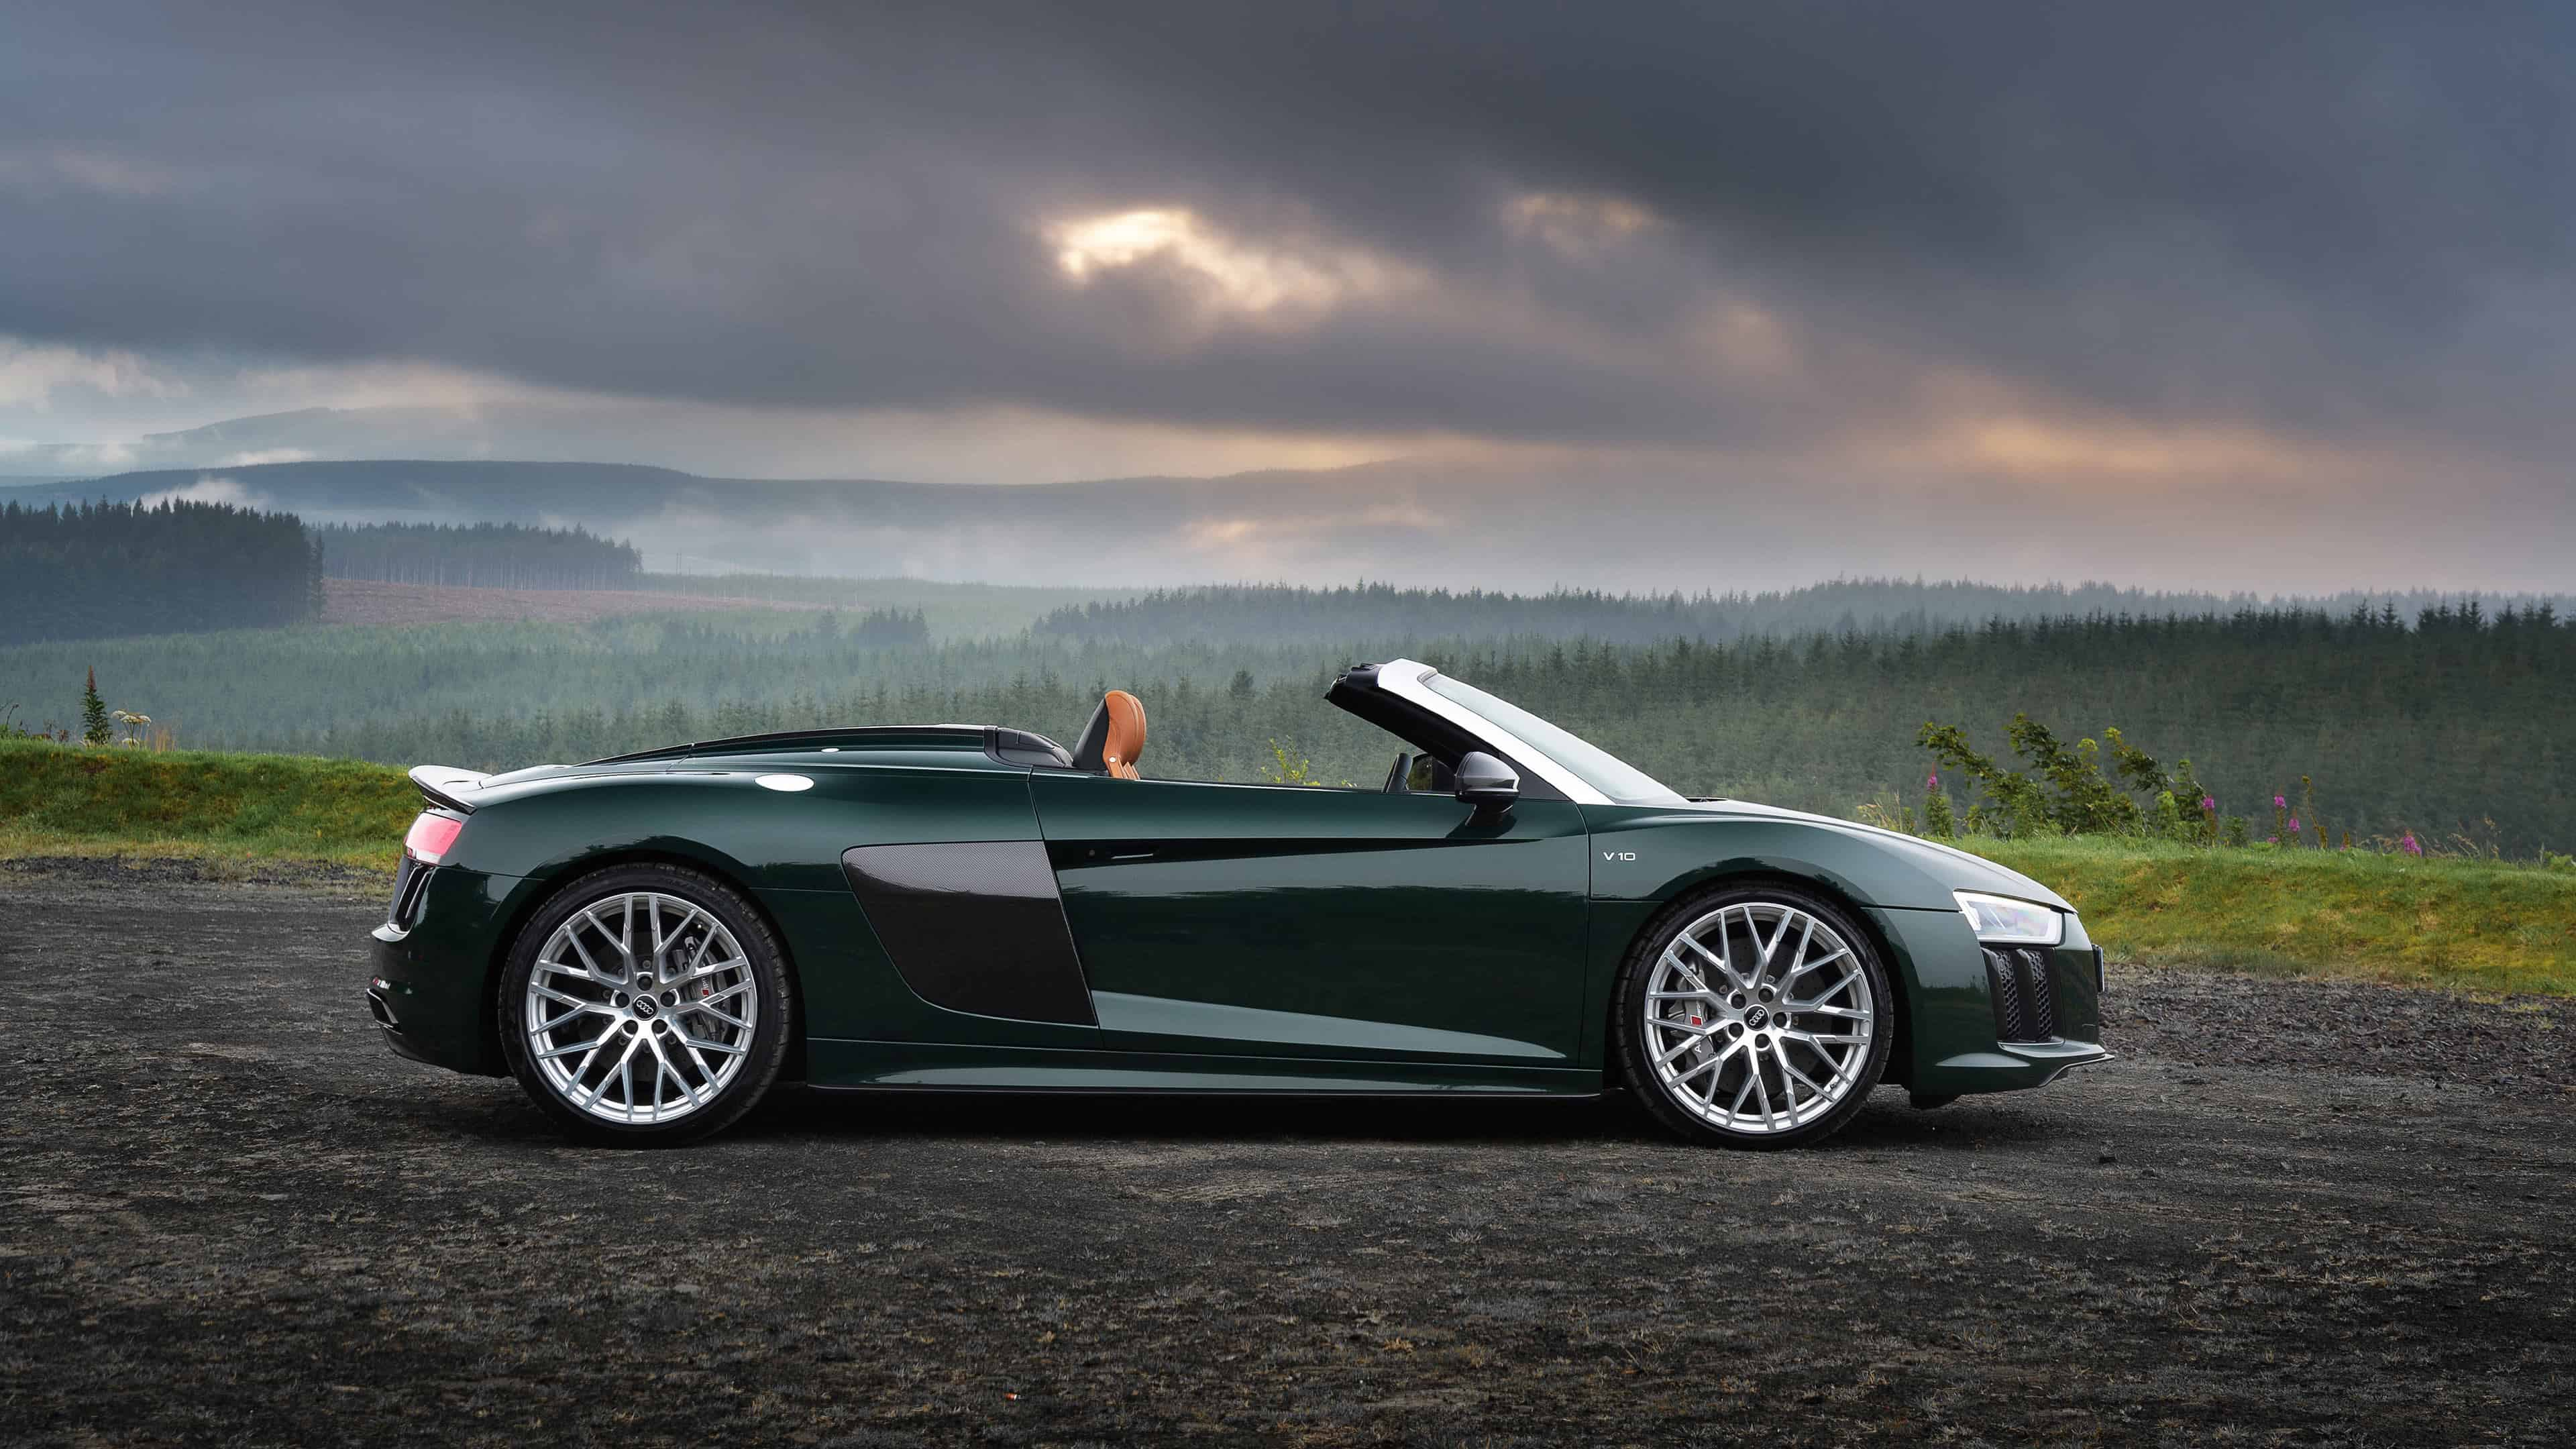 audi r8 spyder v10 plus uhd 4k wallpaper